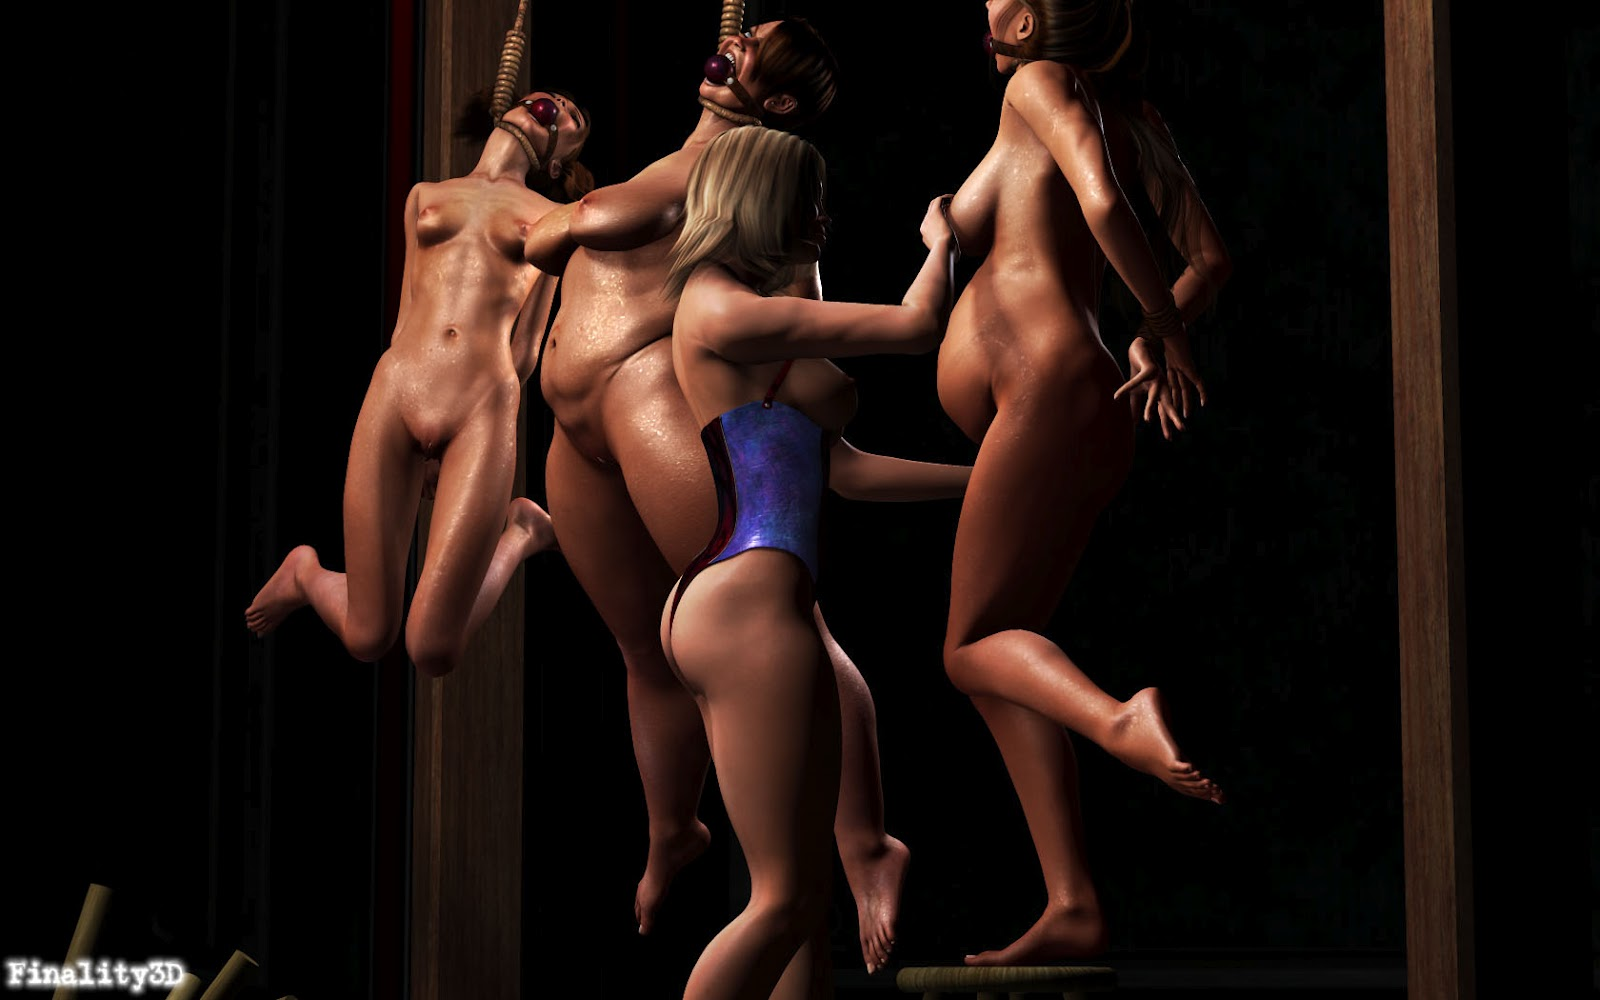 Erotic guillotine 3d sex clips